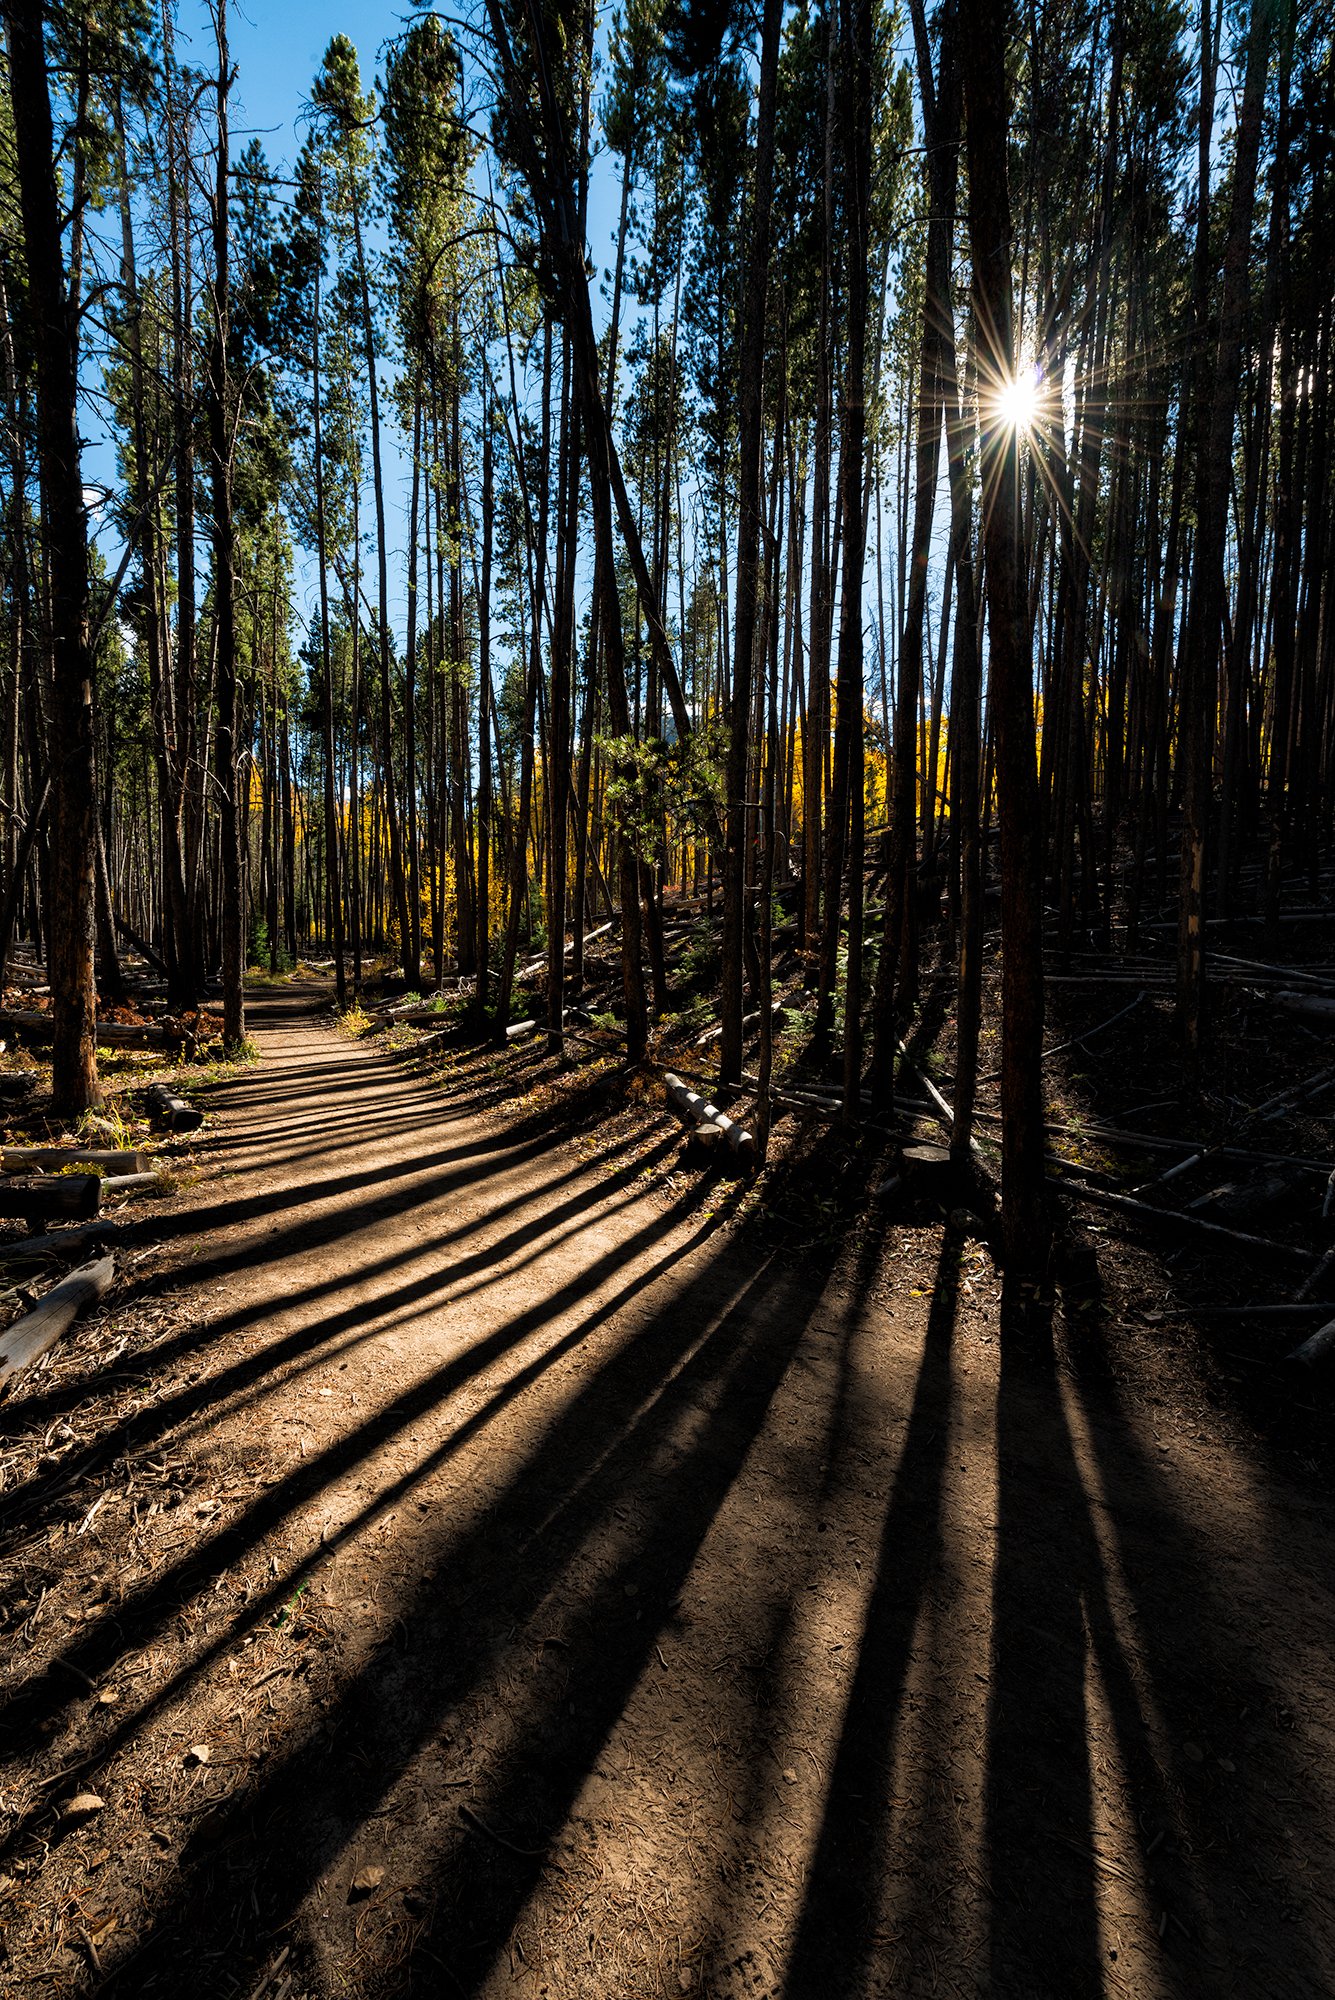 Lines in the Forest. Meadow Creek Trail, Frisco, Colorado, 2016